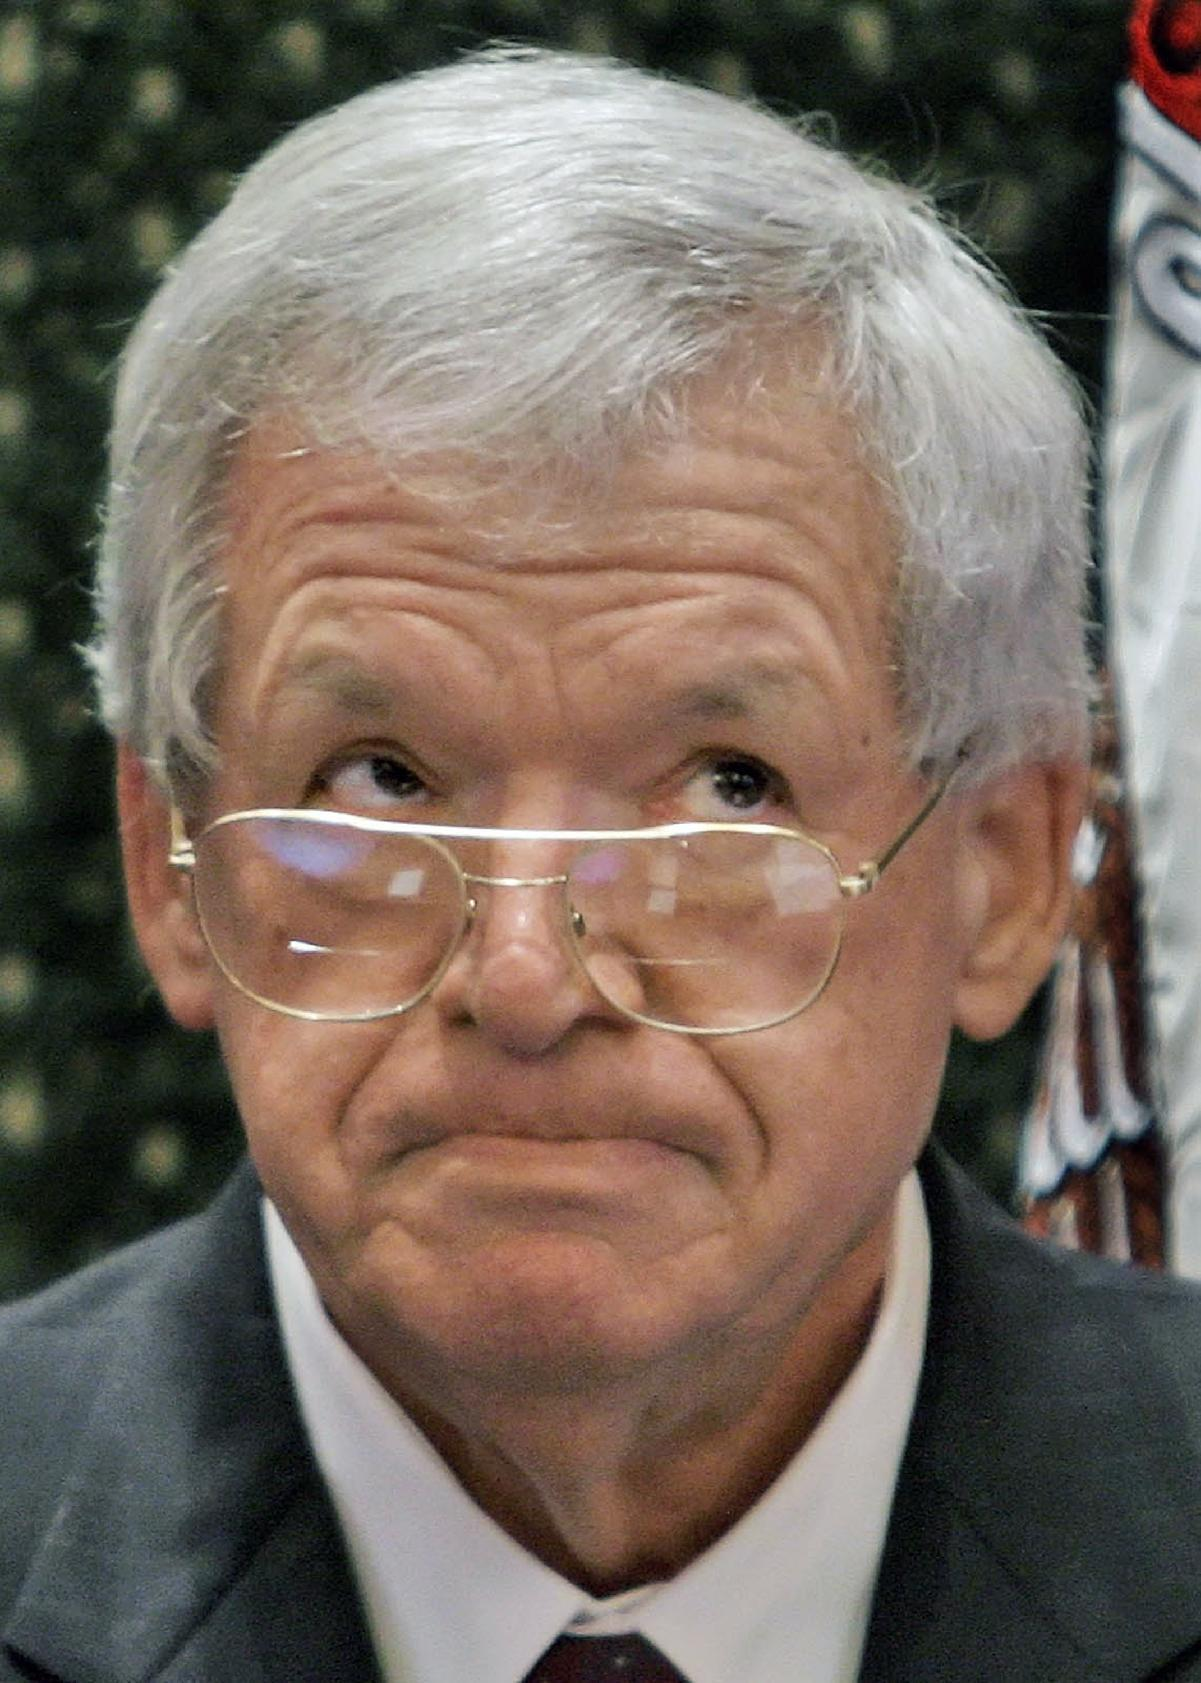 Ex-US Speaker Hastert indicted on bank-related charges